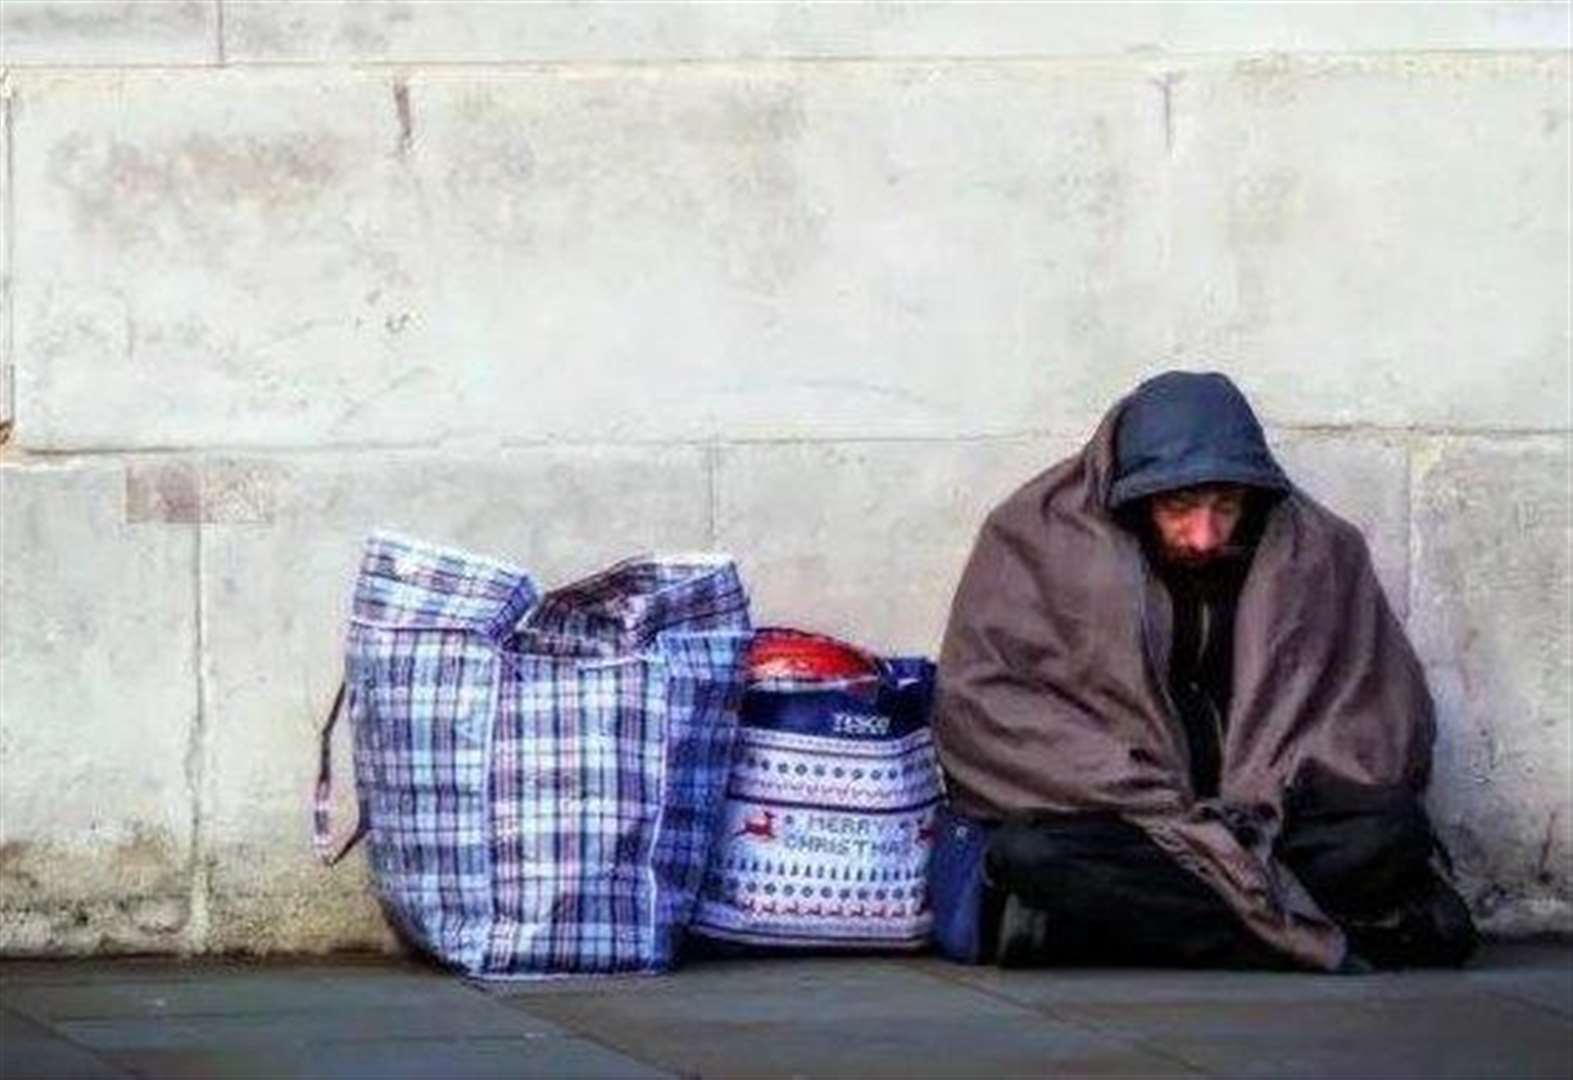 Homeless figures down by more than 50%